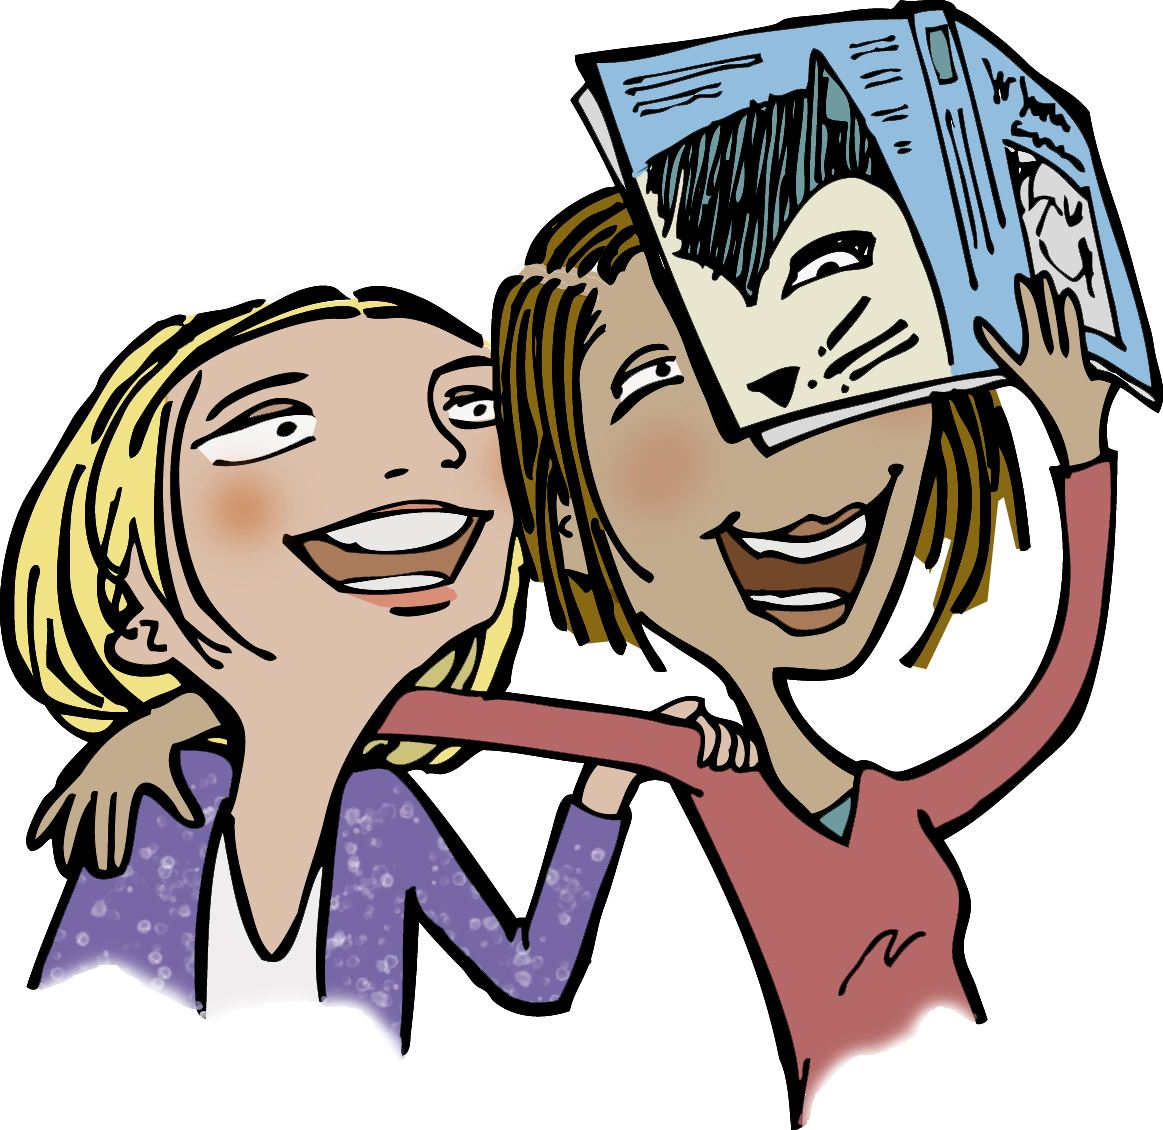 Illustration of teens making book faces